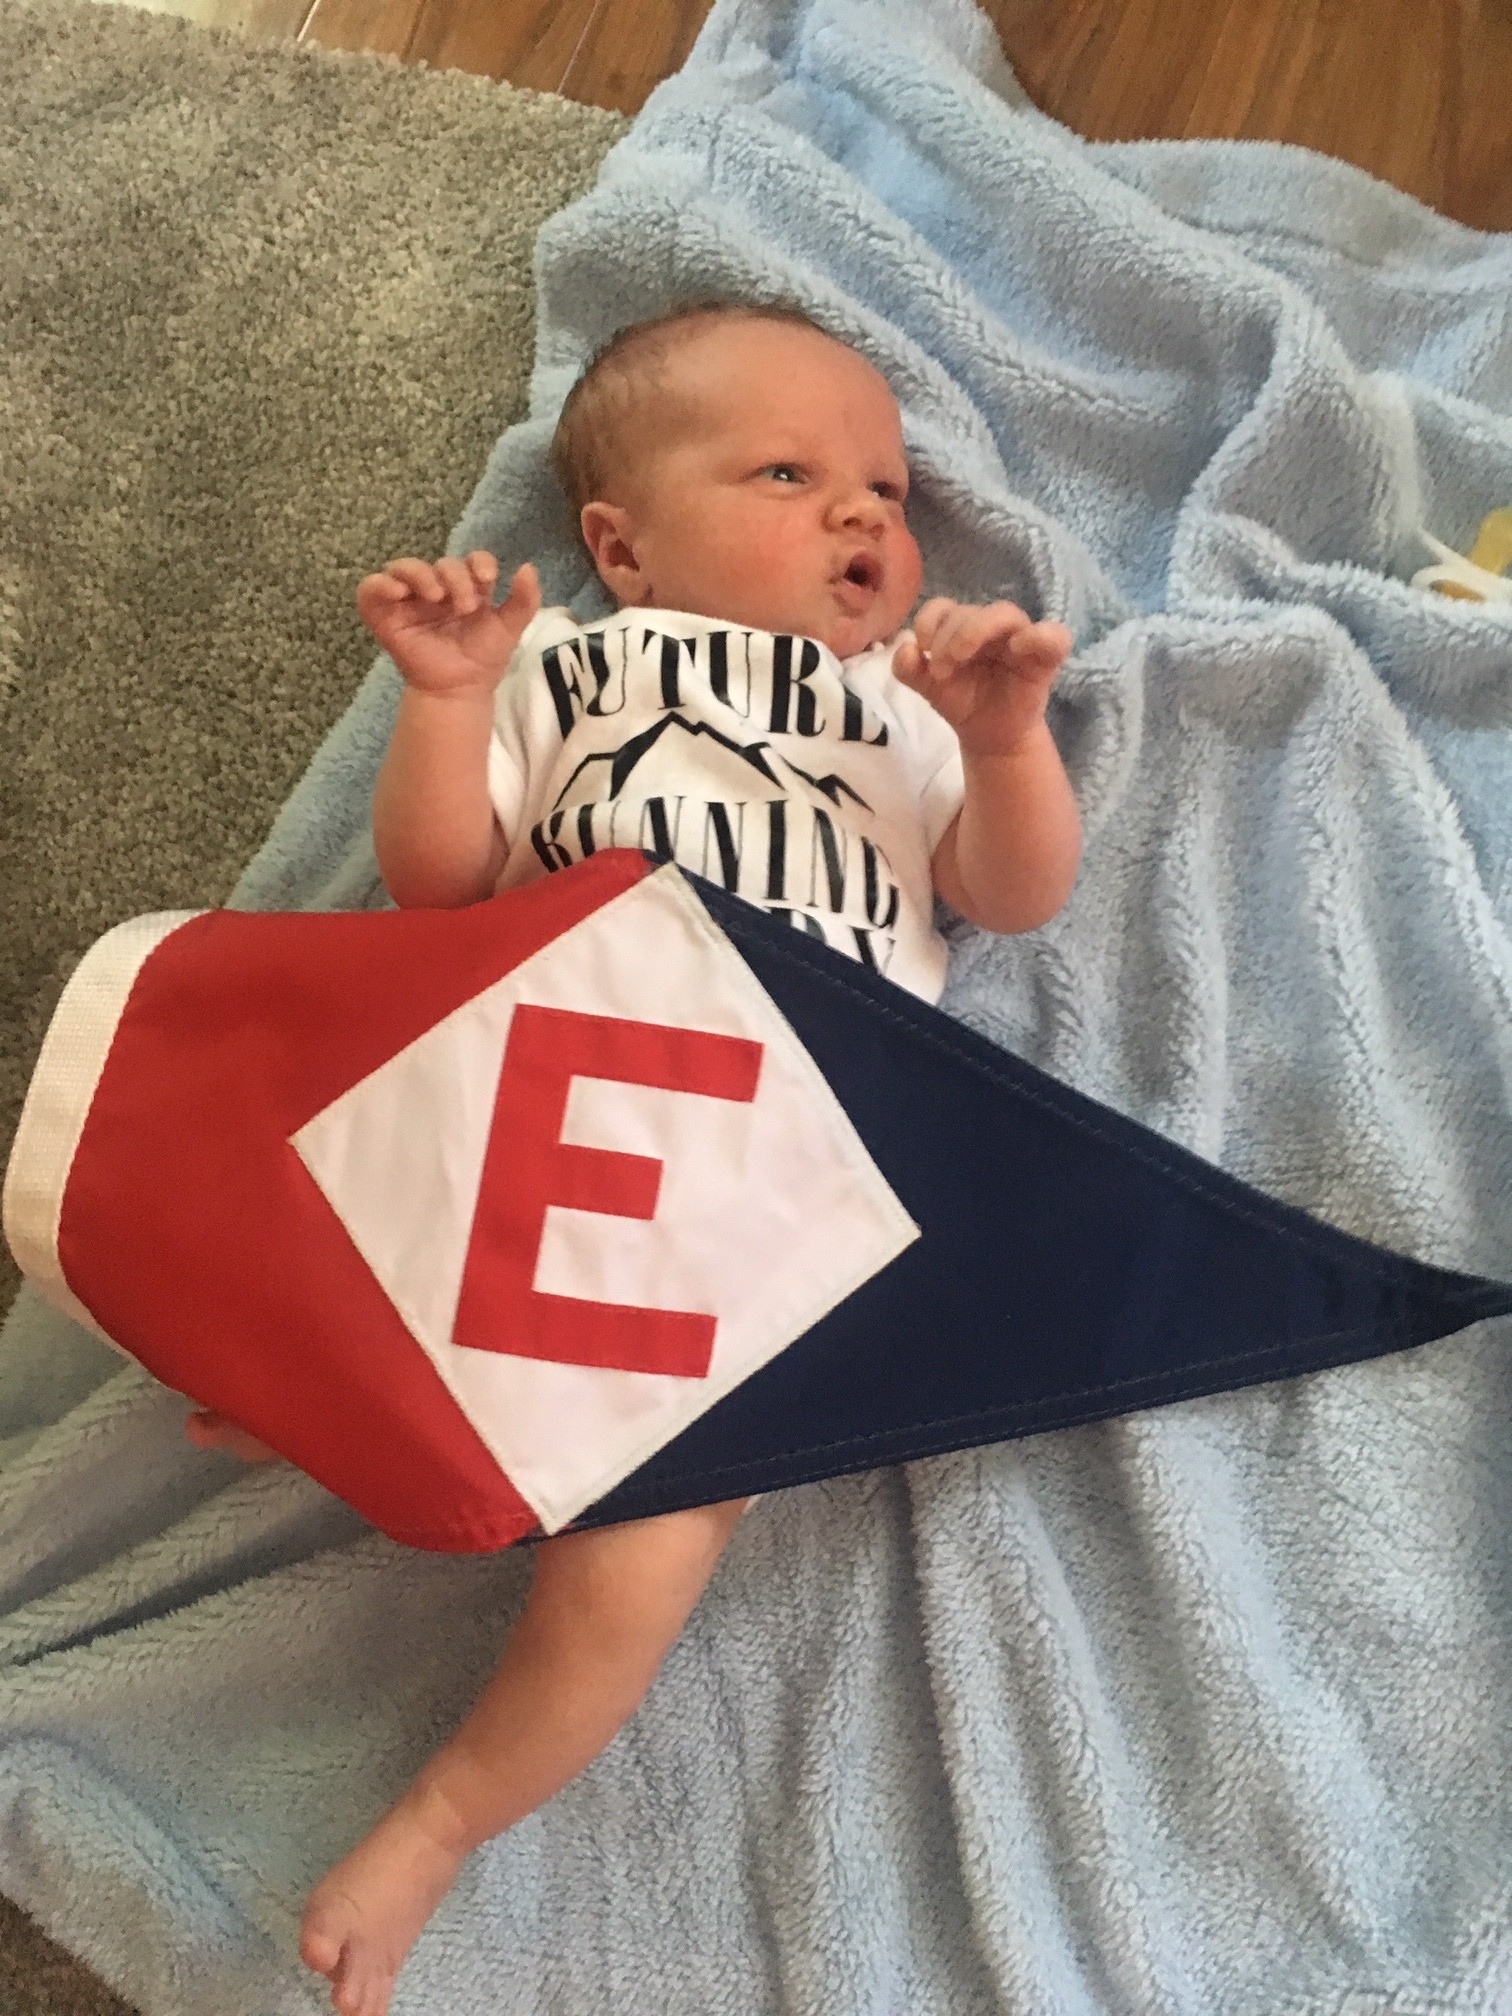 Owen Robert, the newest member of the EYC family, shows his EYC pride